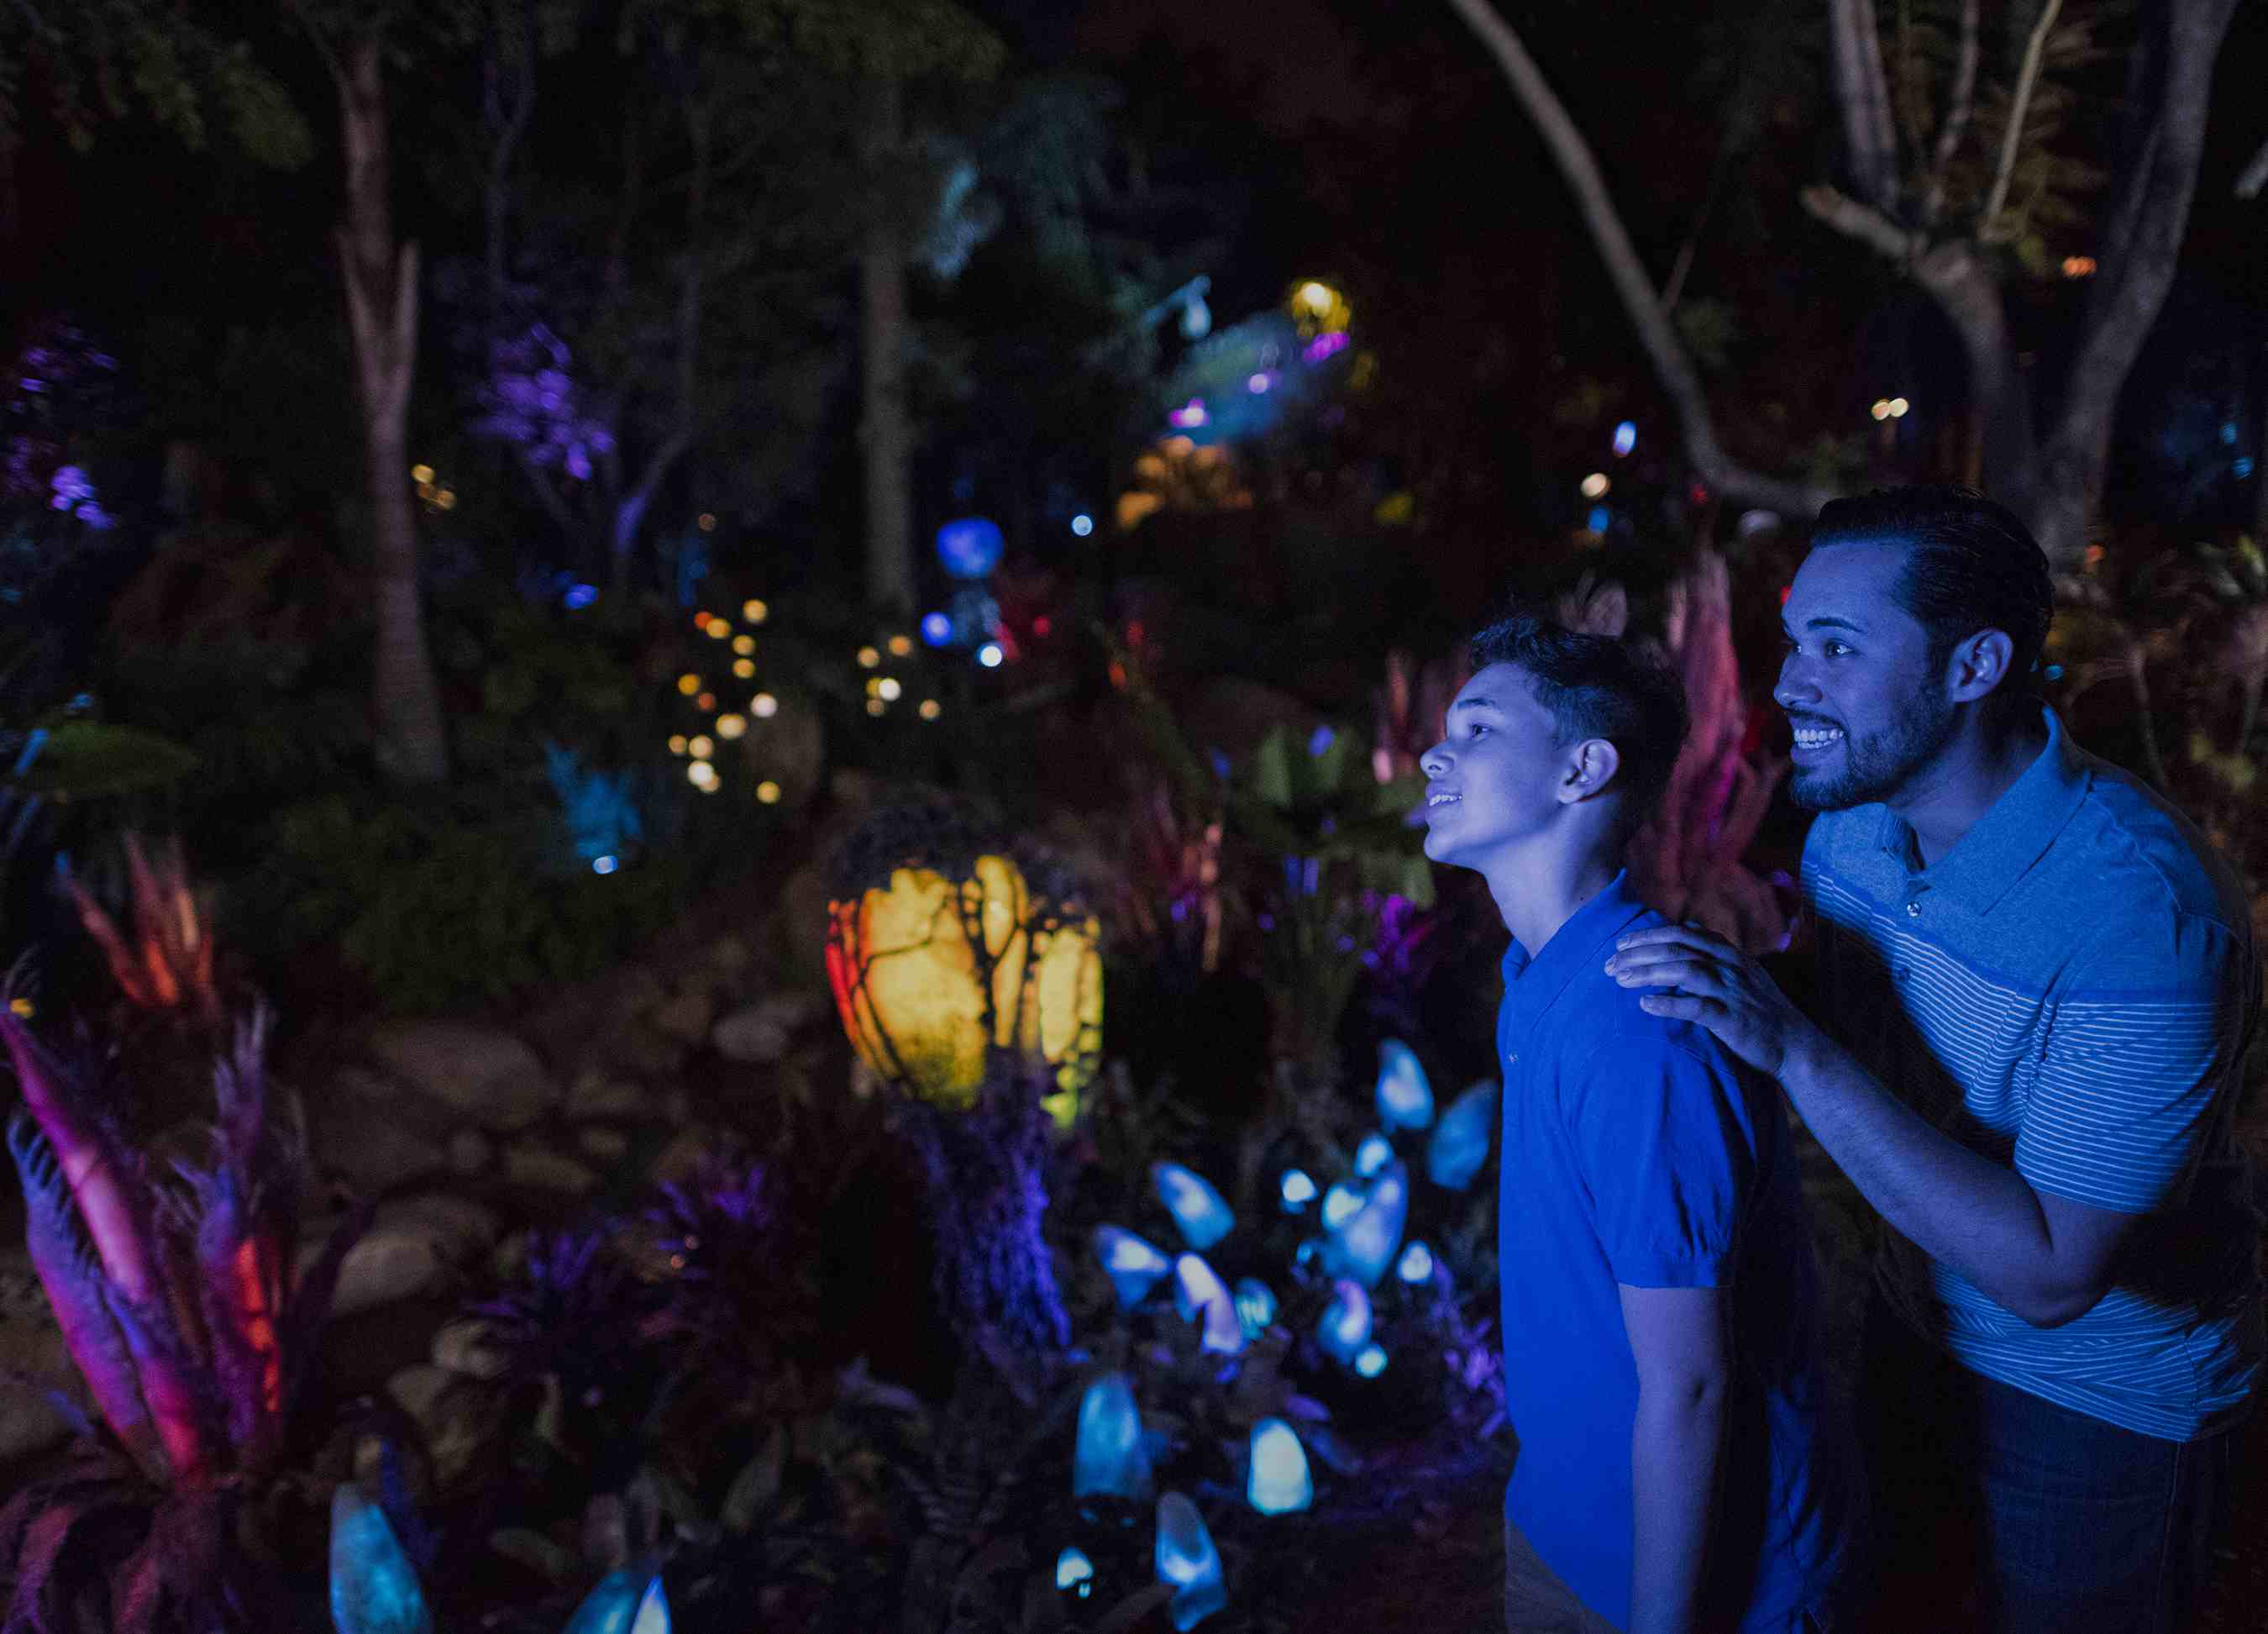 Father and son smiling at the Bioluminescent Plants at Pandora World of Avatar